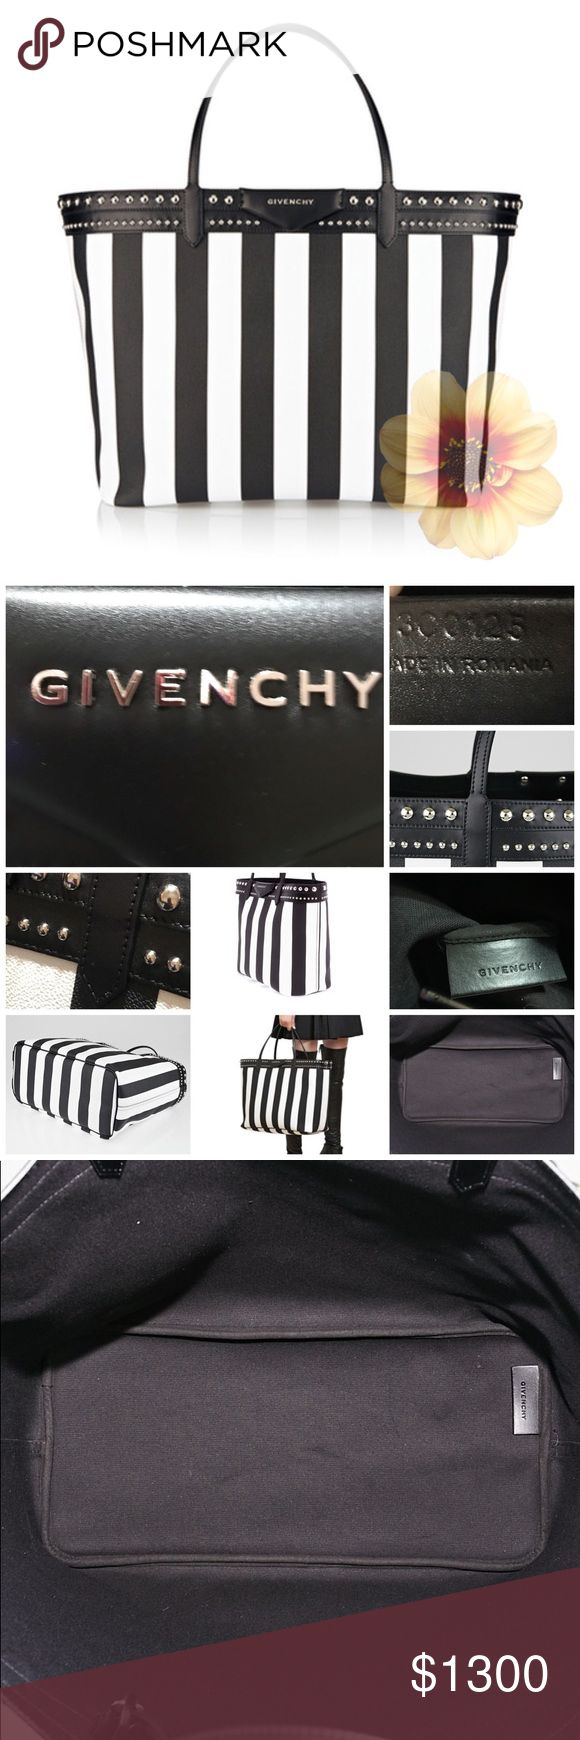 "GIVENCHY B/W Stripe Coated Canvas Antigona Tote Large amazing contrasting striped Antigona tote! features the signature envelope fold logo with a raised metal logo plaque that is synonymous with the Antigona line. This fabulous large sized tote is both feminine and hardworking in stripe-print coated canvas with studded leather trim. A removable matching pouch is a welcomed addition to this tote. Origin: Romania Production Year: 2015 Measurements: 16"" L (at base) x 8"" W x 13"" Handles: Double…"